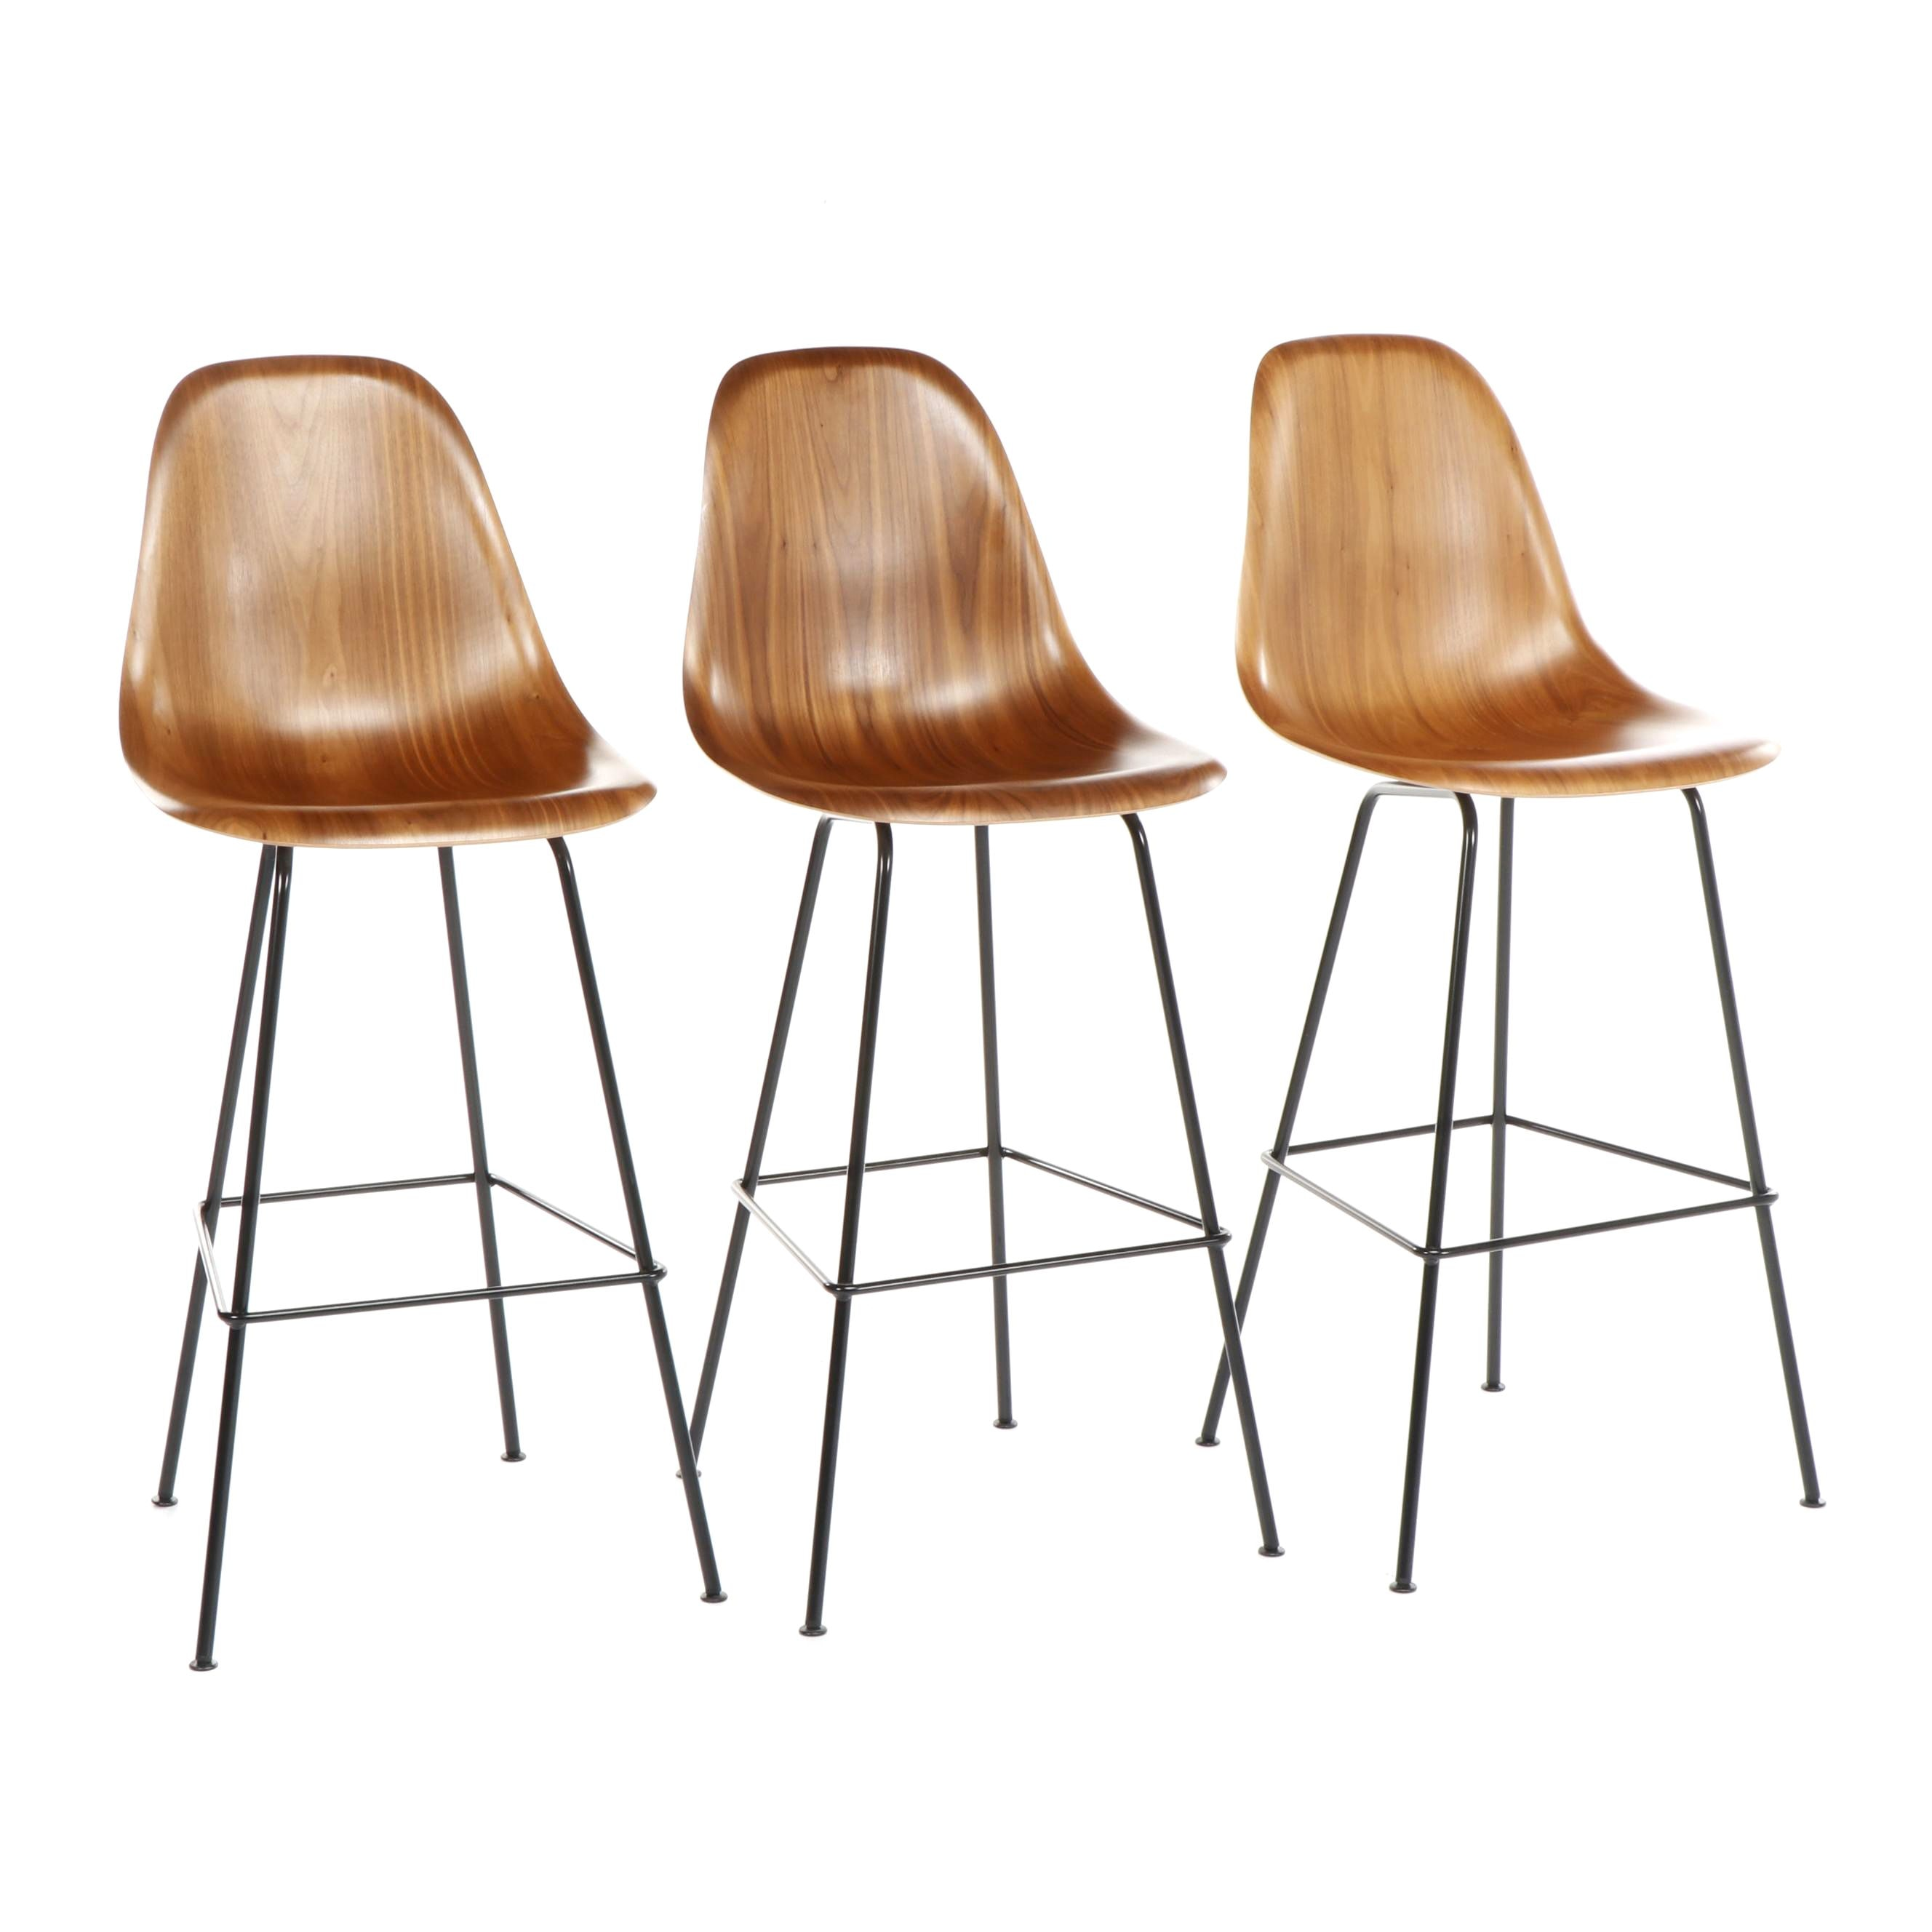 Contemporary Eames Molded Walnut Barstools With Black Steel Base